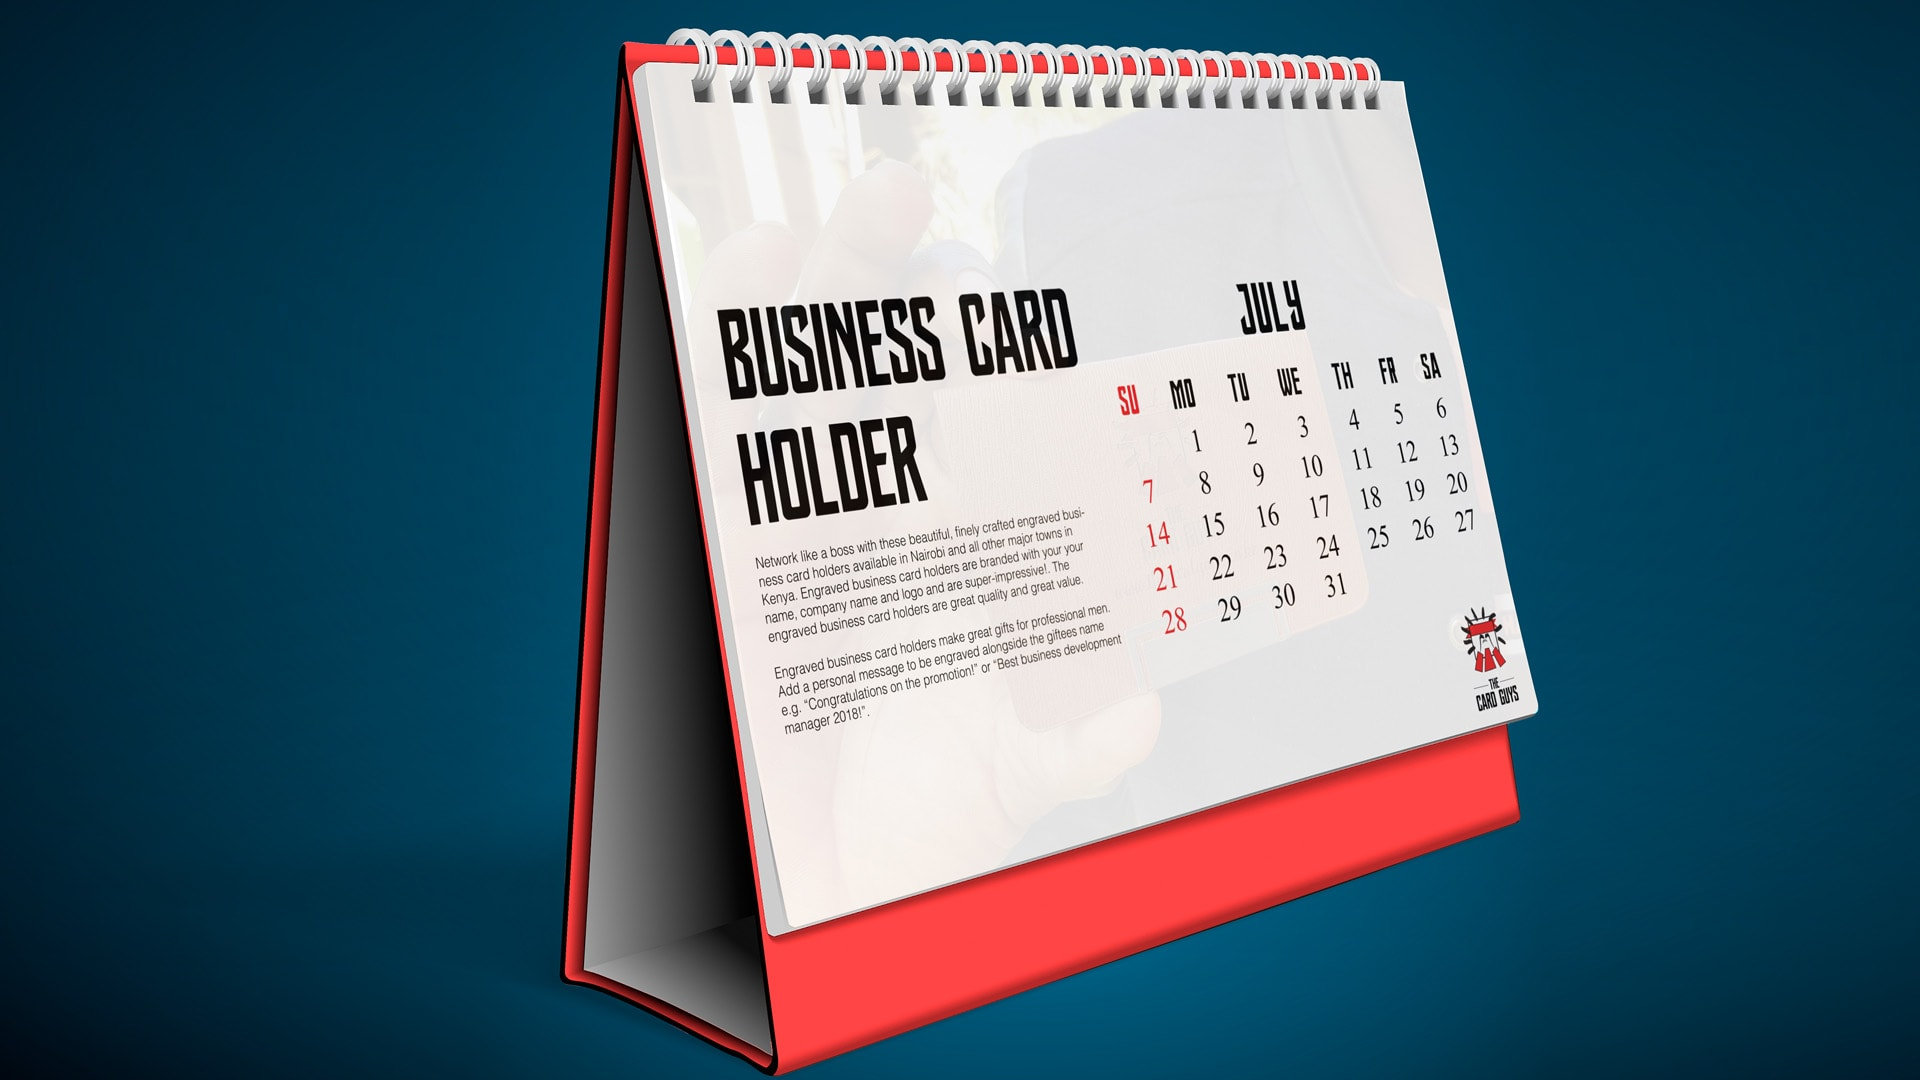 Print desk calendars online in nairobi kenya the card guys print desk calendars online in nairobi kenya reheart Image collections